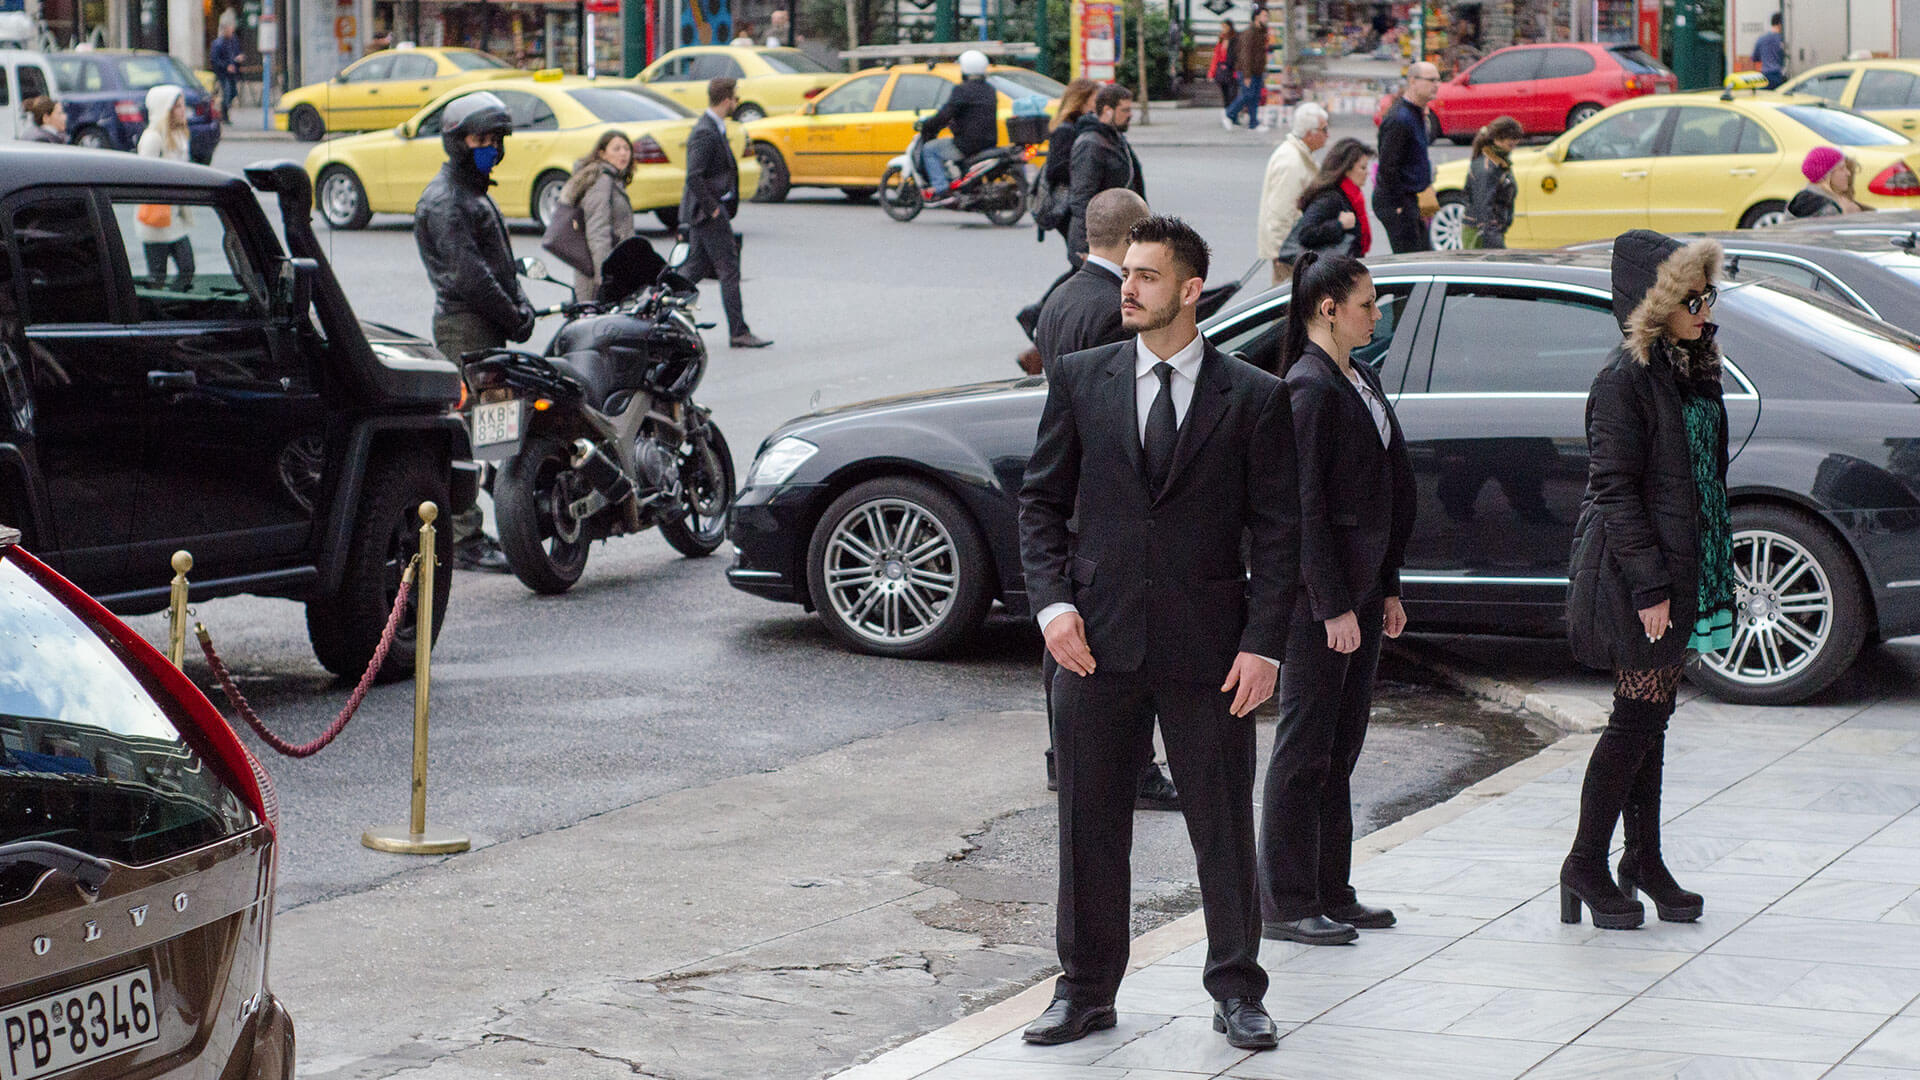 What Qualities Should a Person Check Before Hiring a Bodyguard?